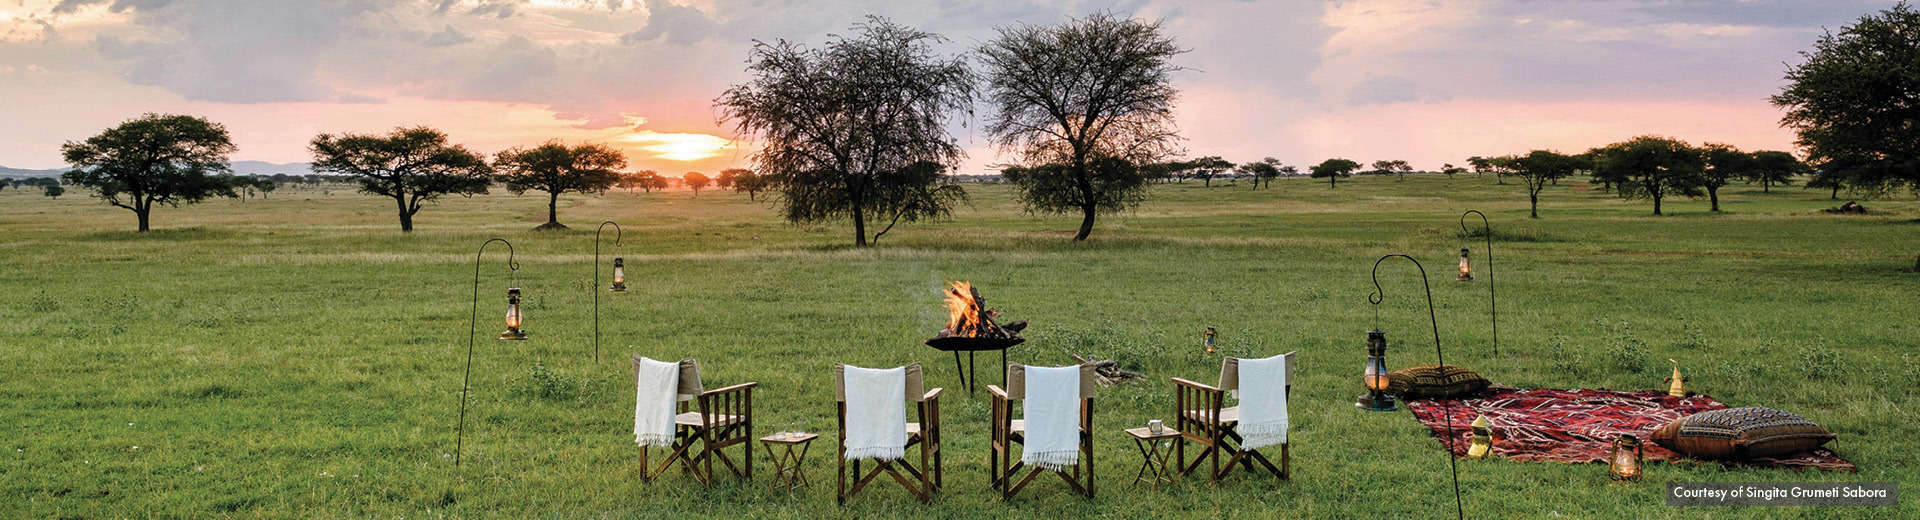 indagare insider journeys singita grumeti sabora camp sunset tanzania